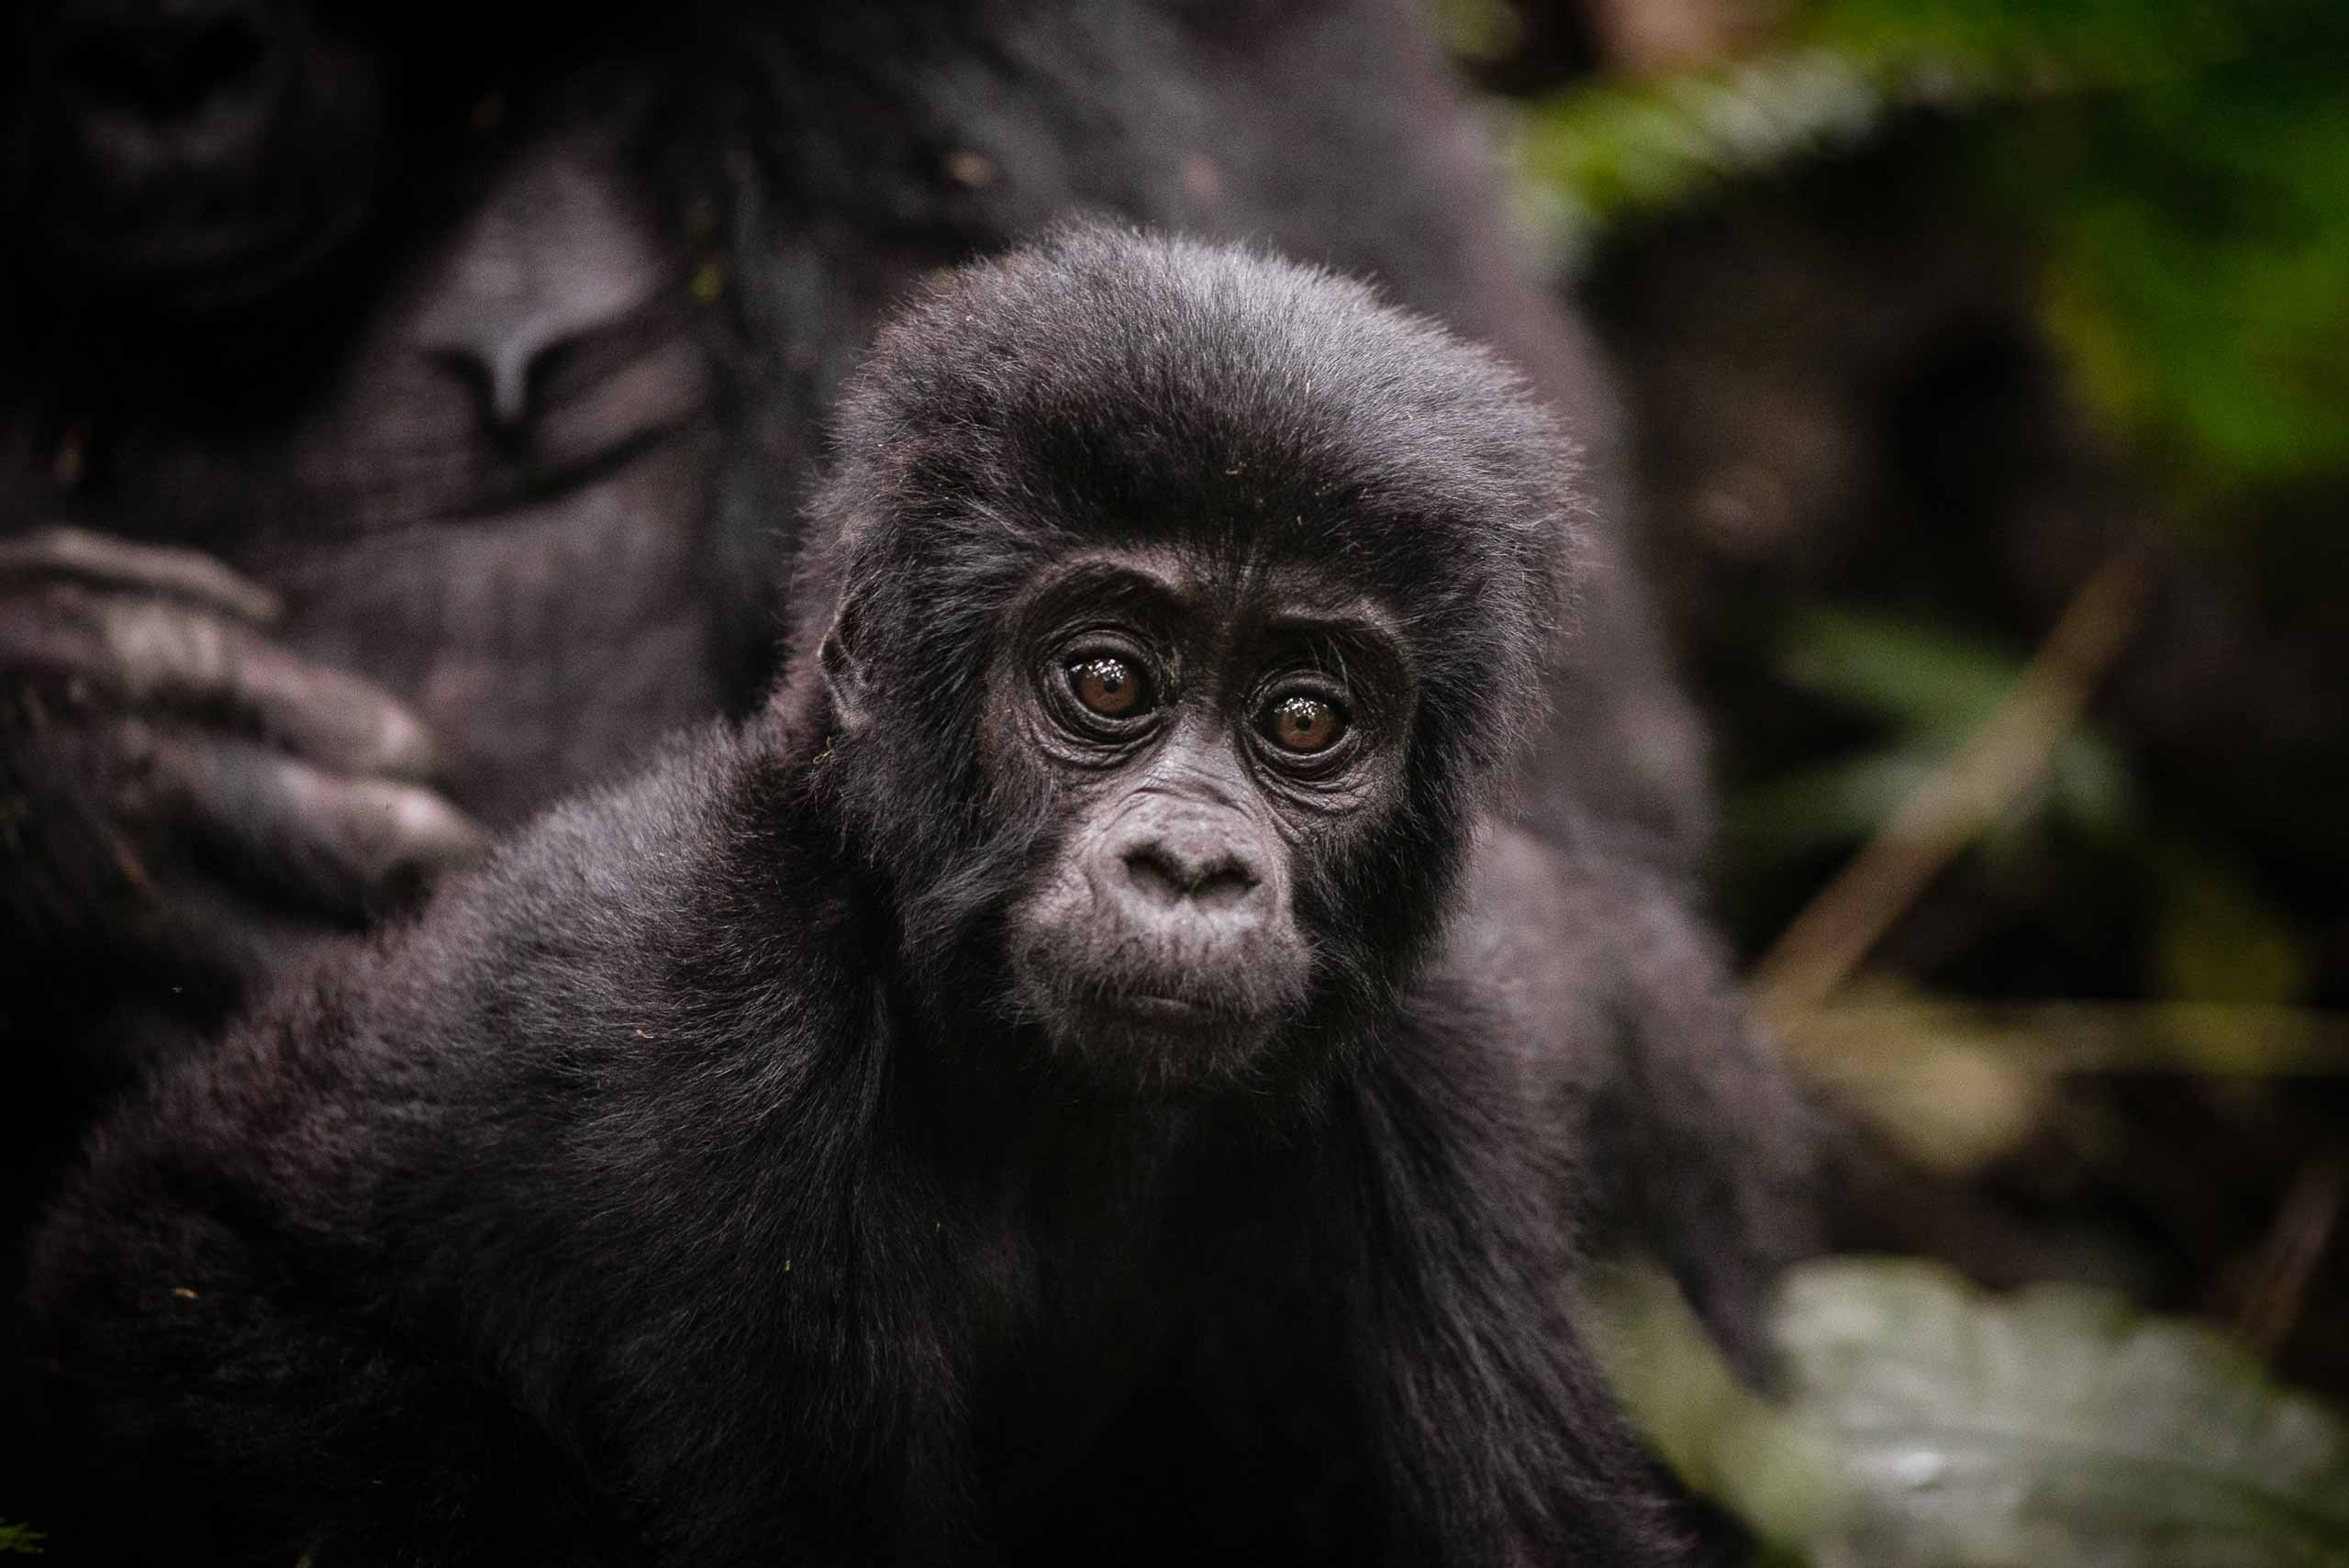 enkosi-africa-safari-uganda-bwindi-impenetrable-gorilla-forest-camp-sanctuary-baby-gorilla